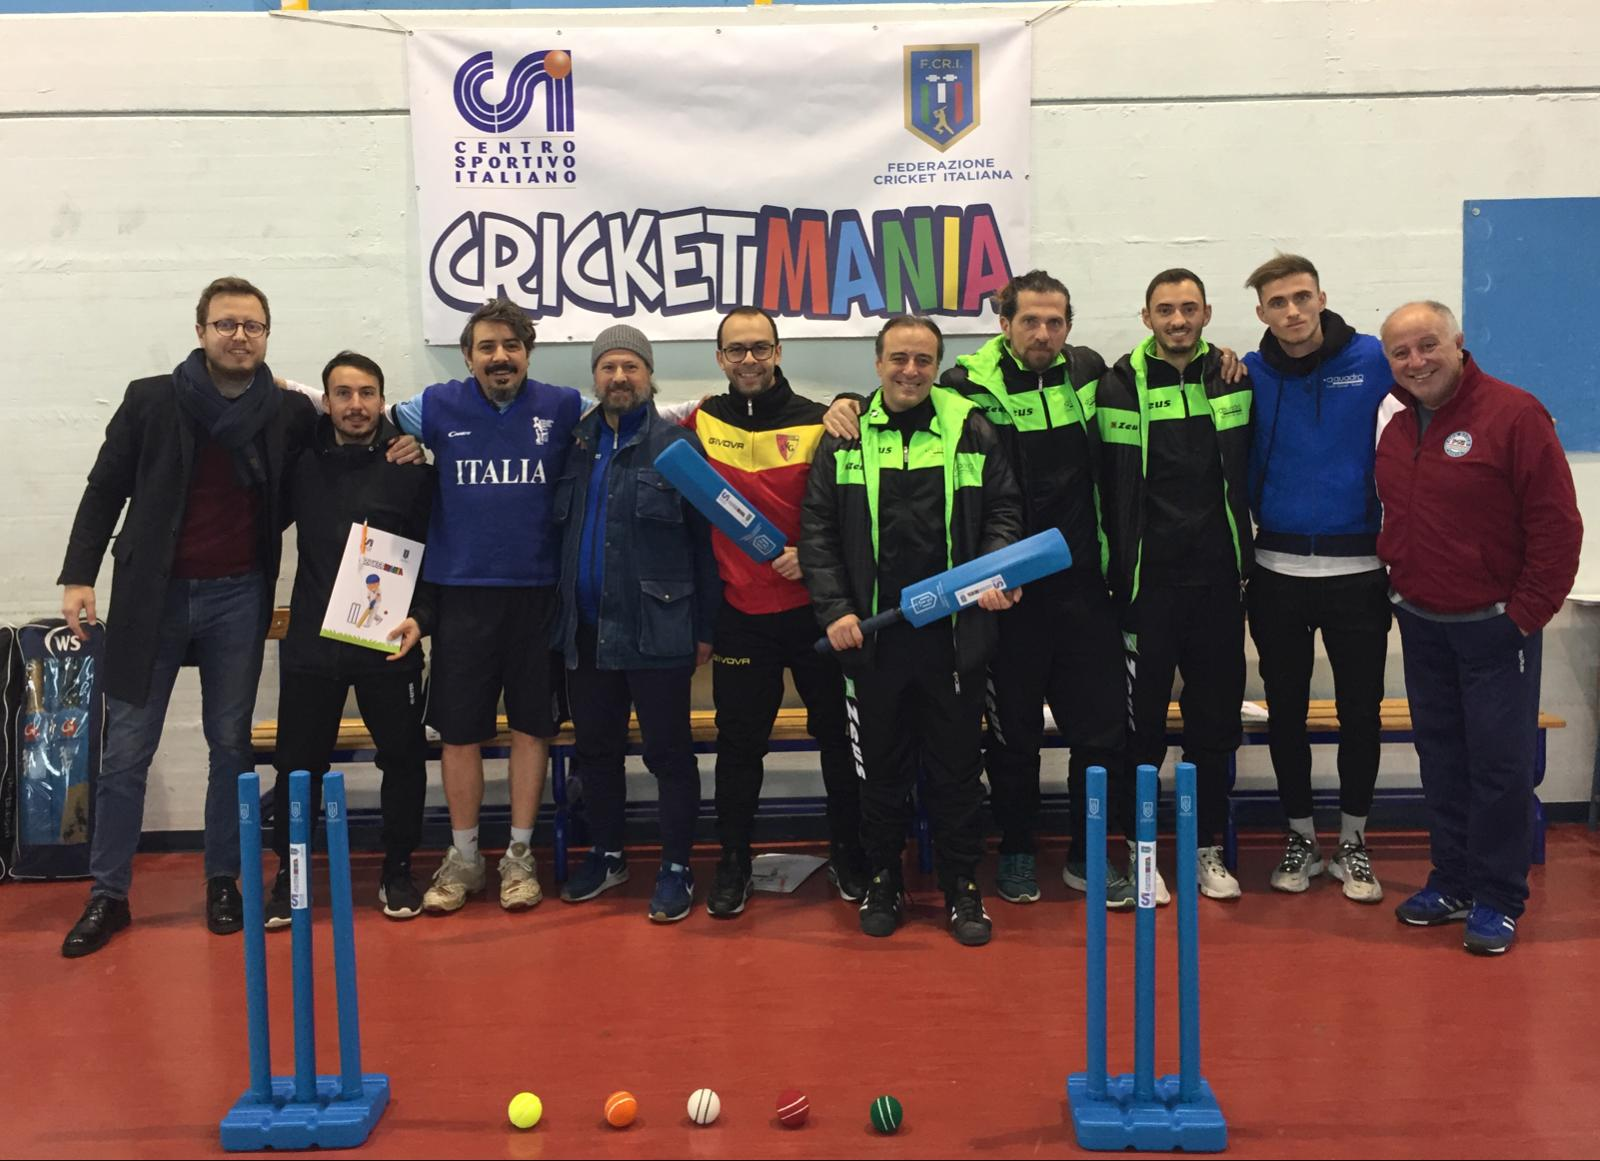 CRICKETMANIA